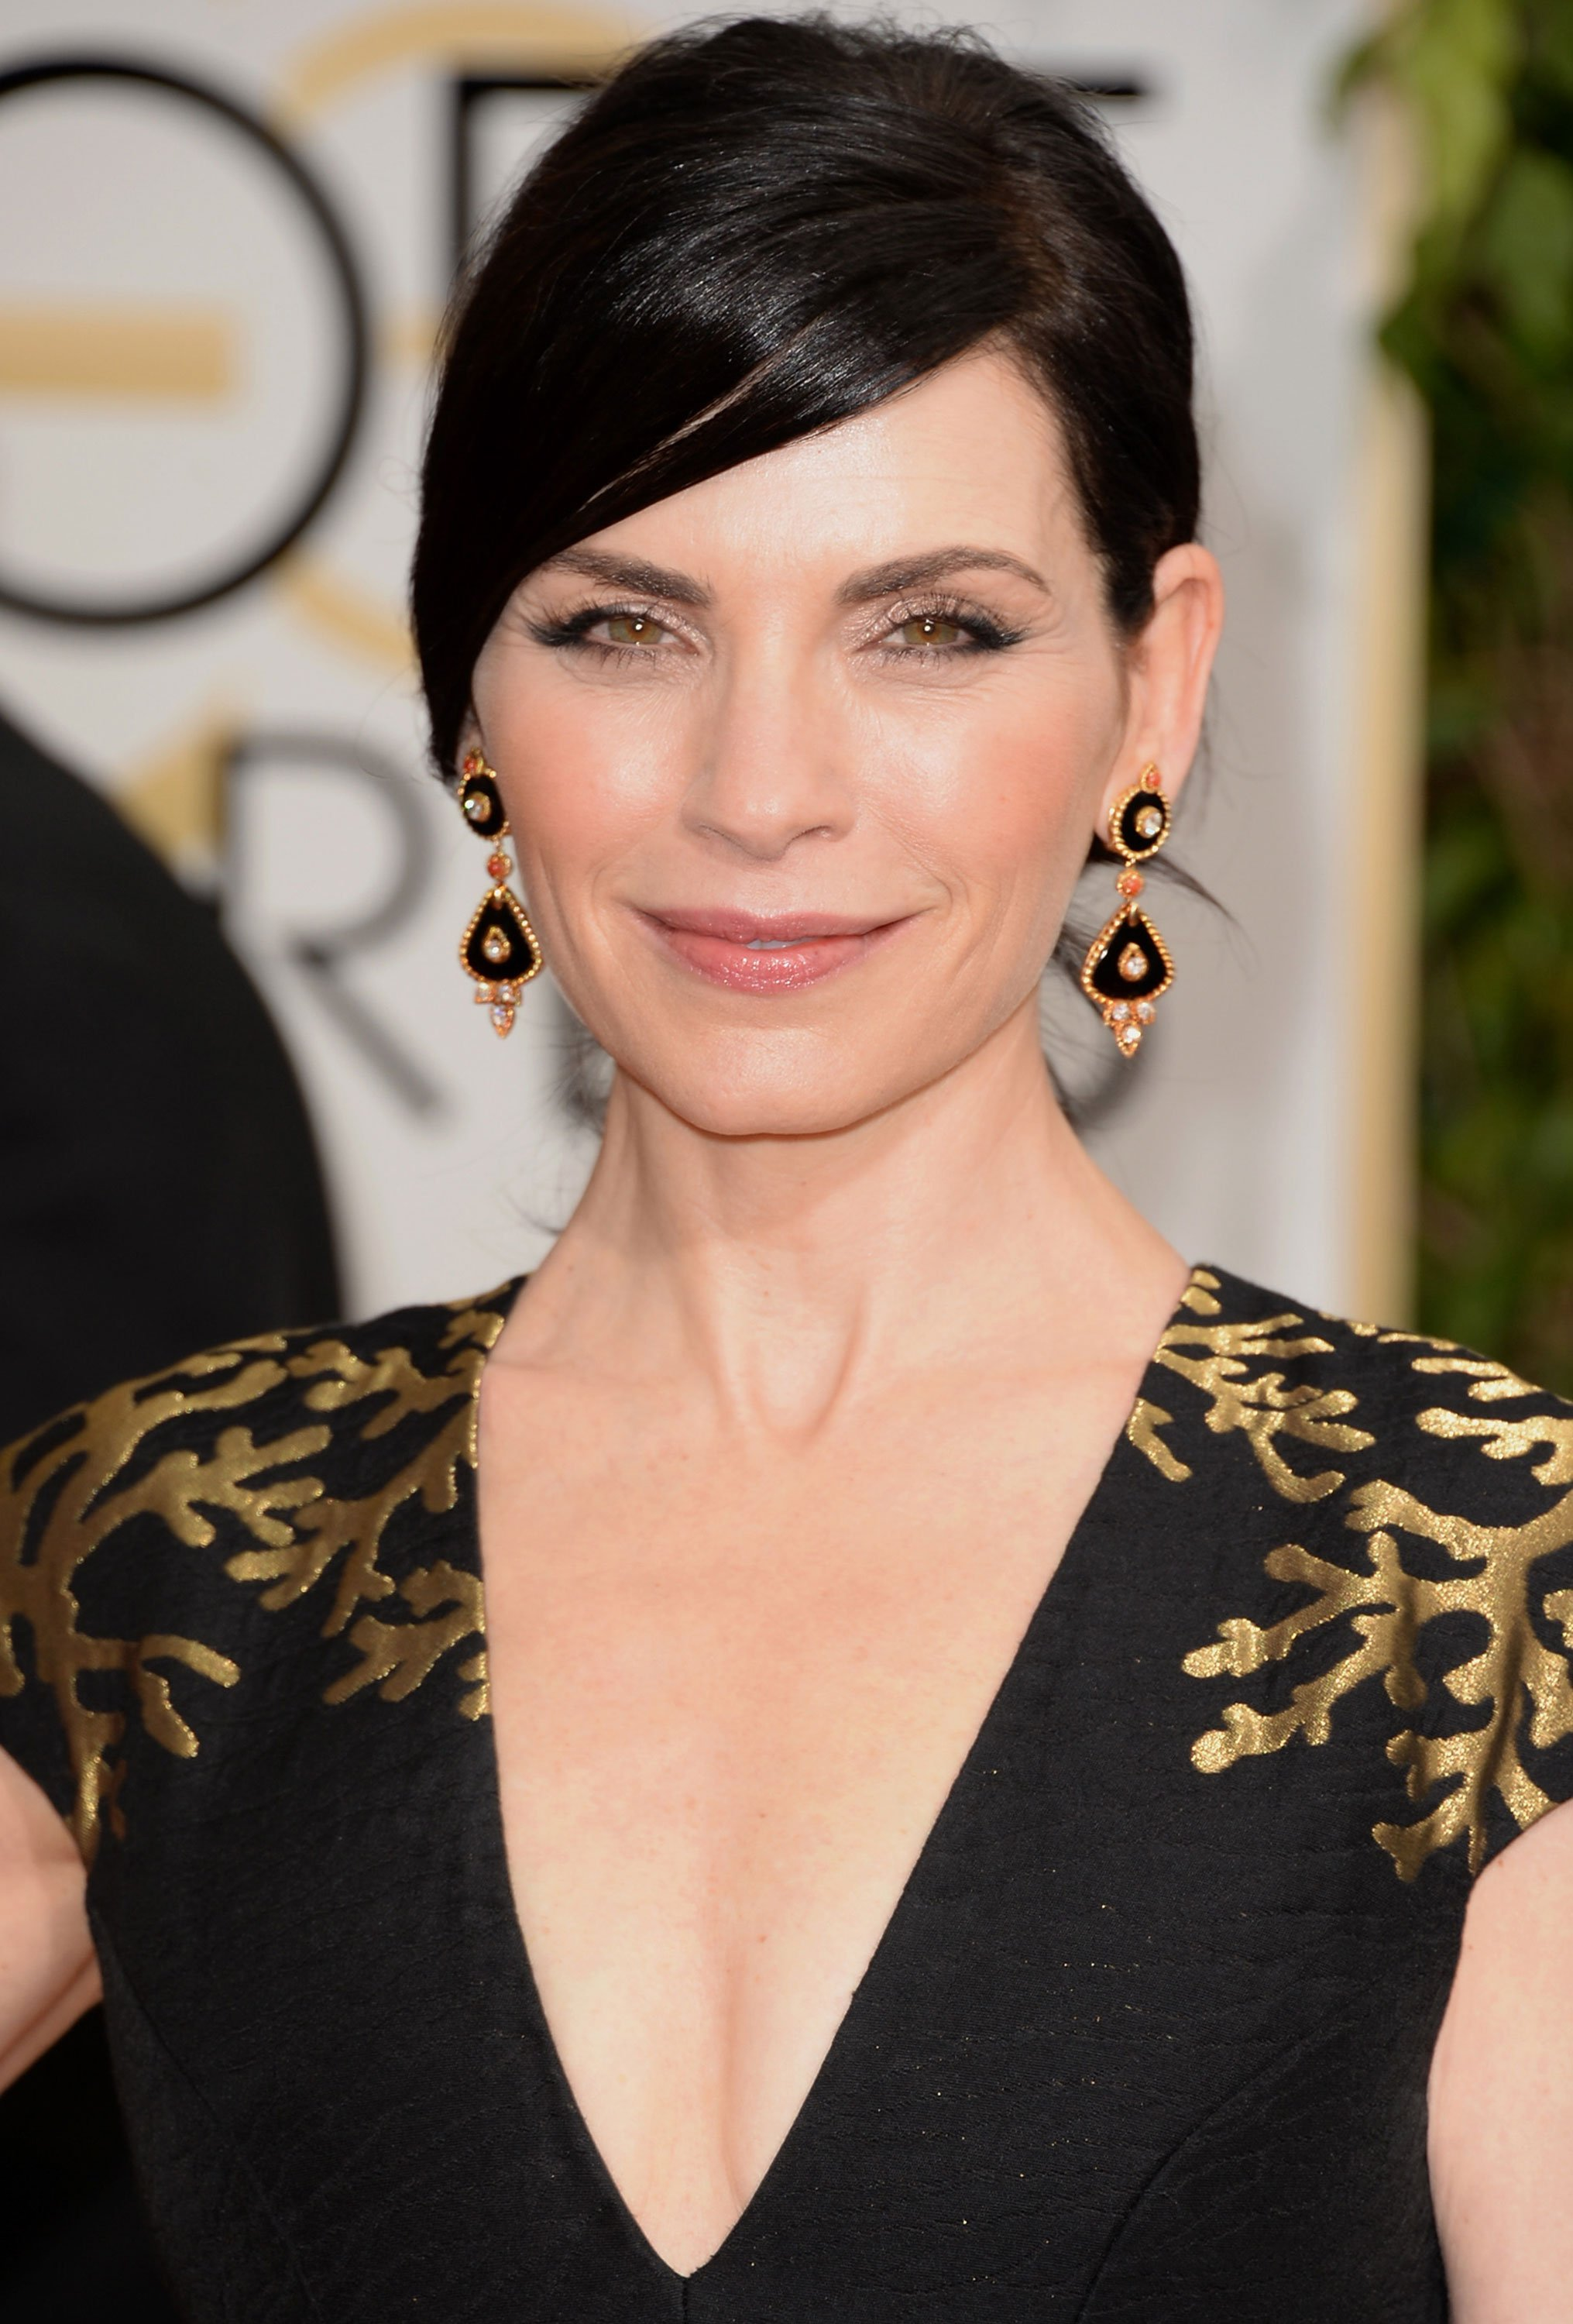 2014 GOLDEN GLOBES: Julianna Margulies by Chris McMillan